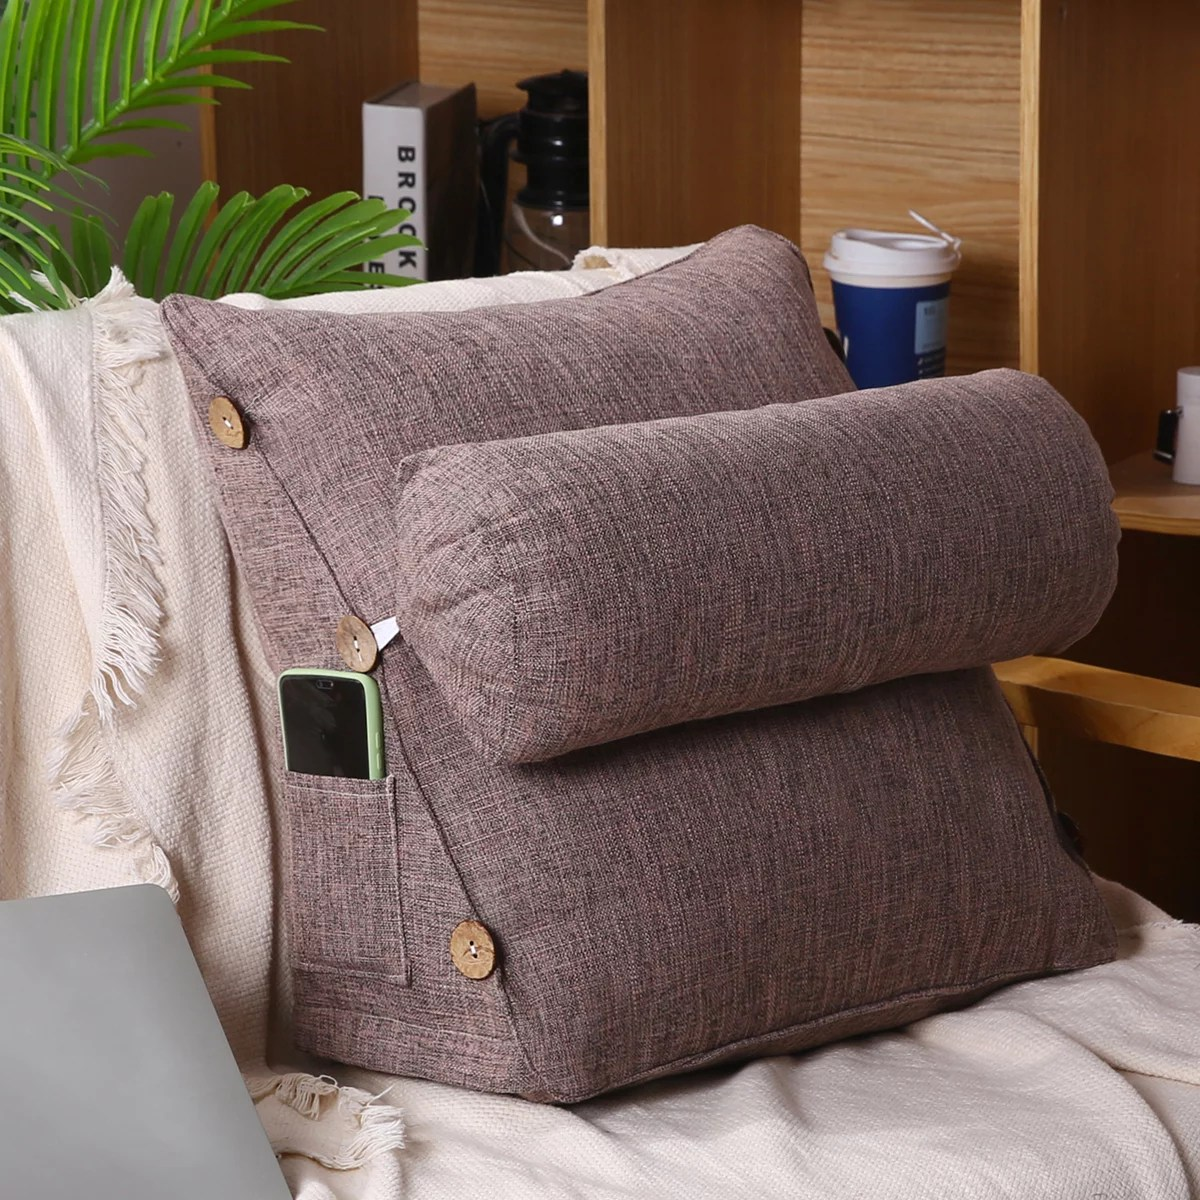 17 7in sofa wedge pillow for relaxing lumbar support heights adjustable back support pillow adult backrest lounge cushion reading pillow and bed